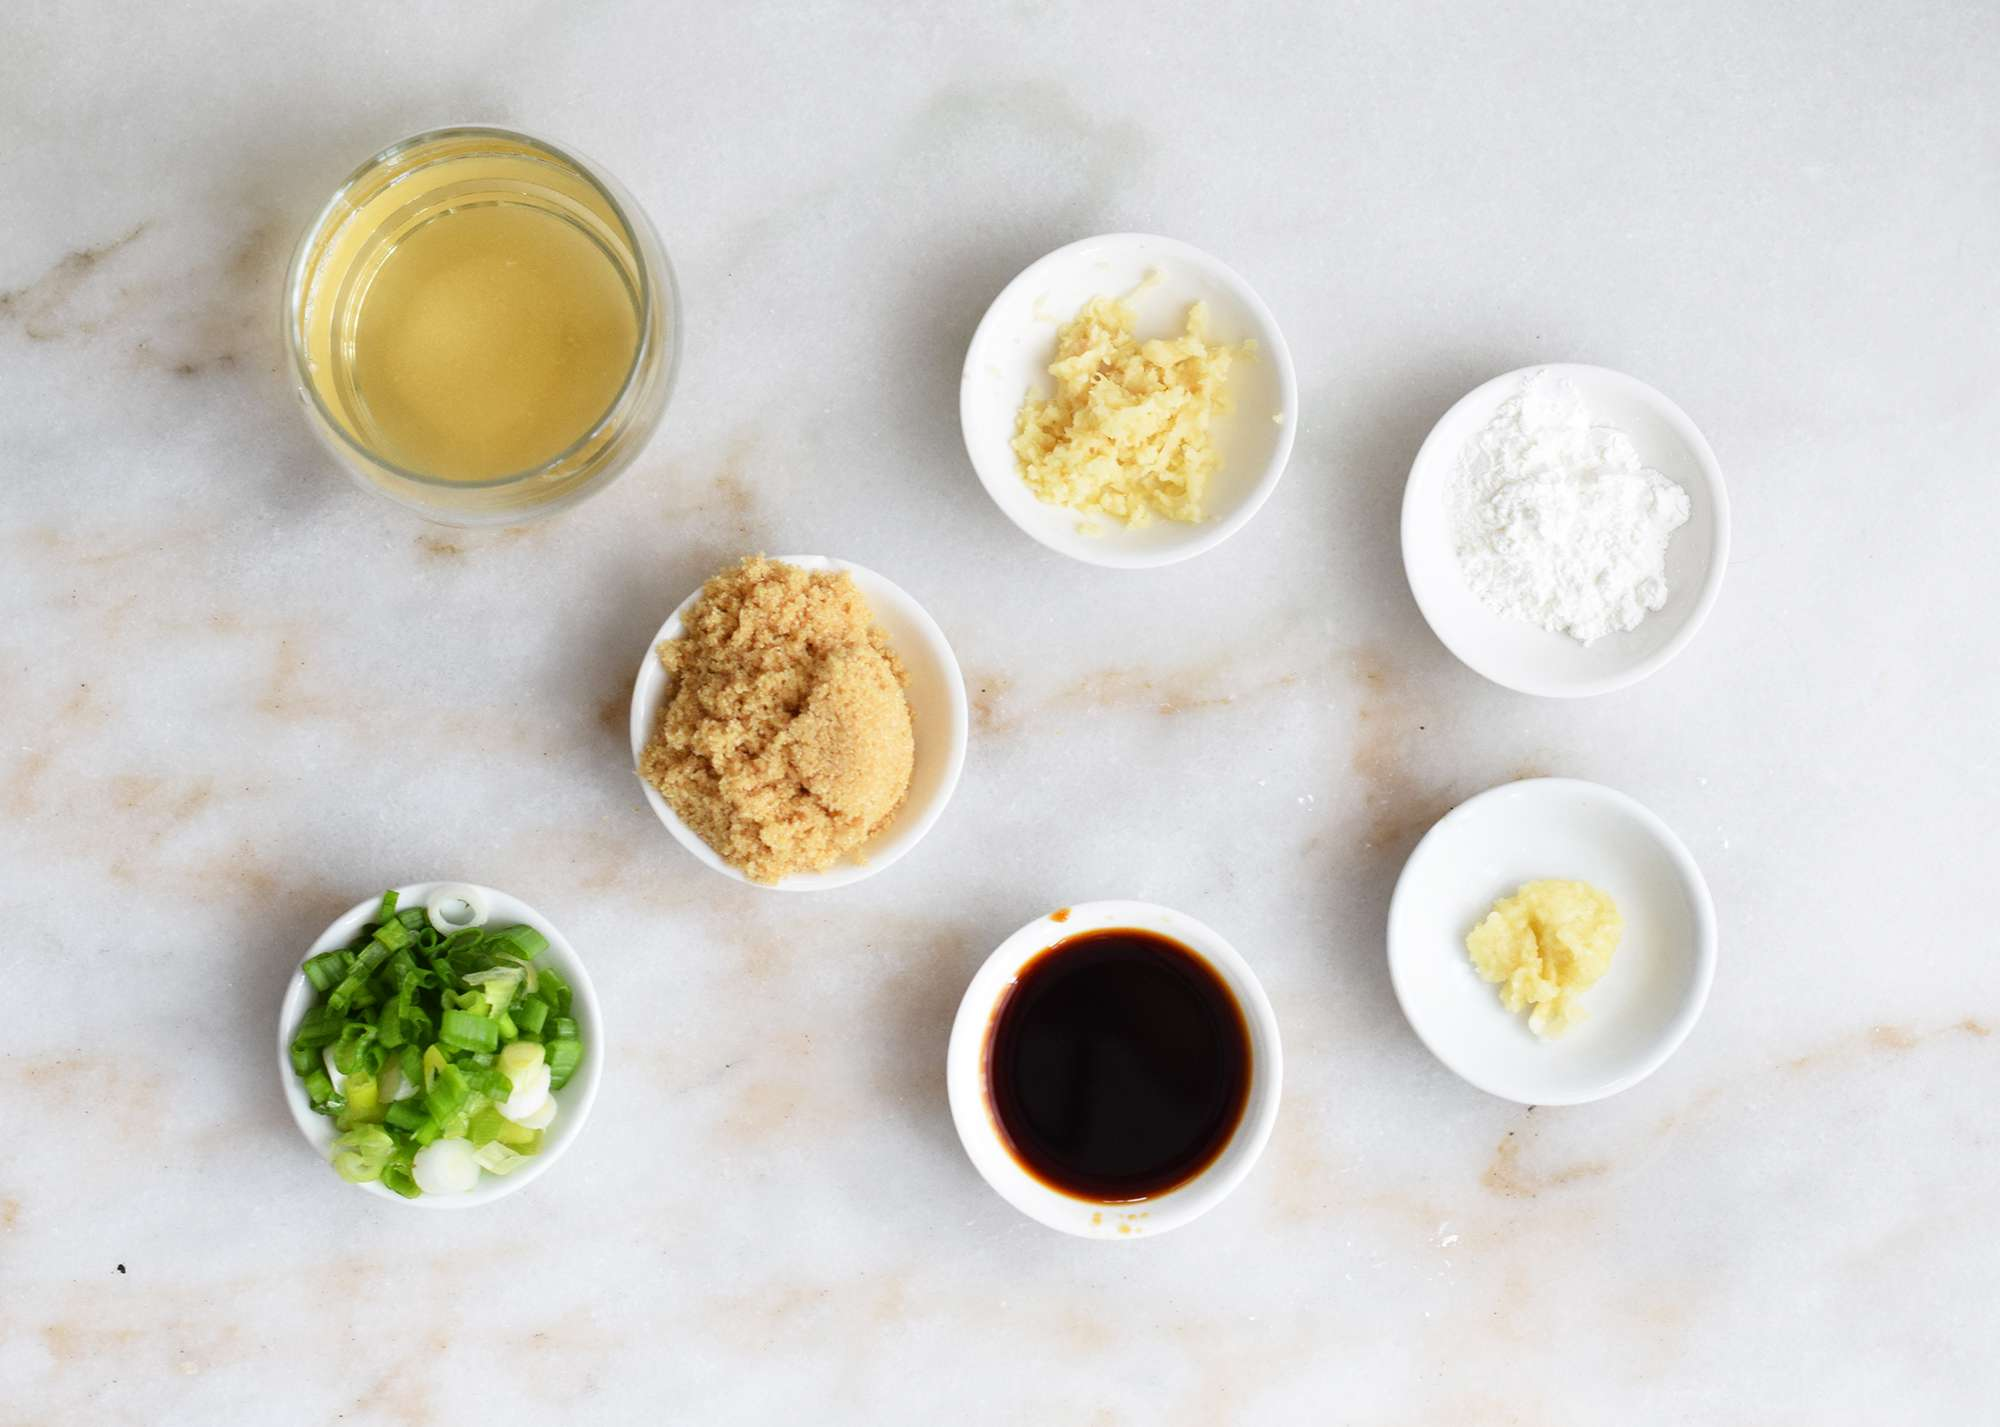 ingredients for sweet soy sauce